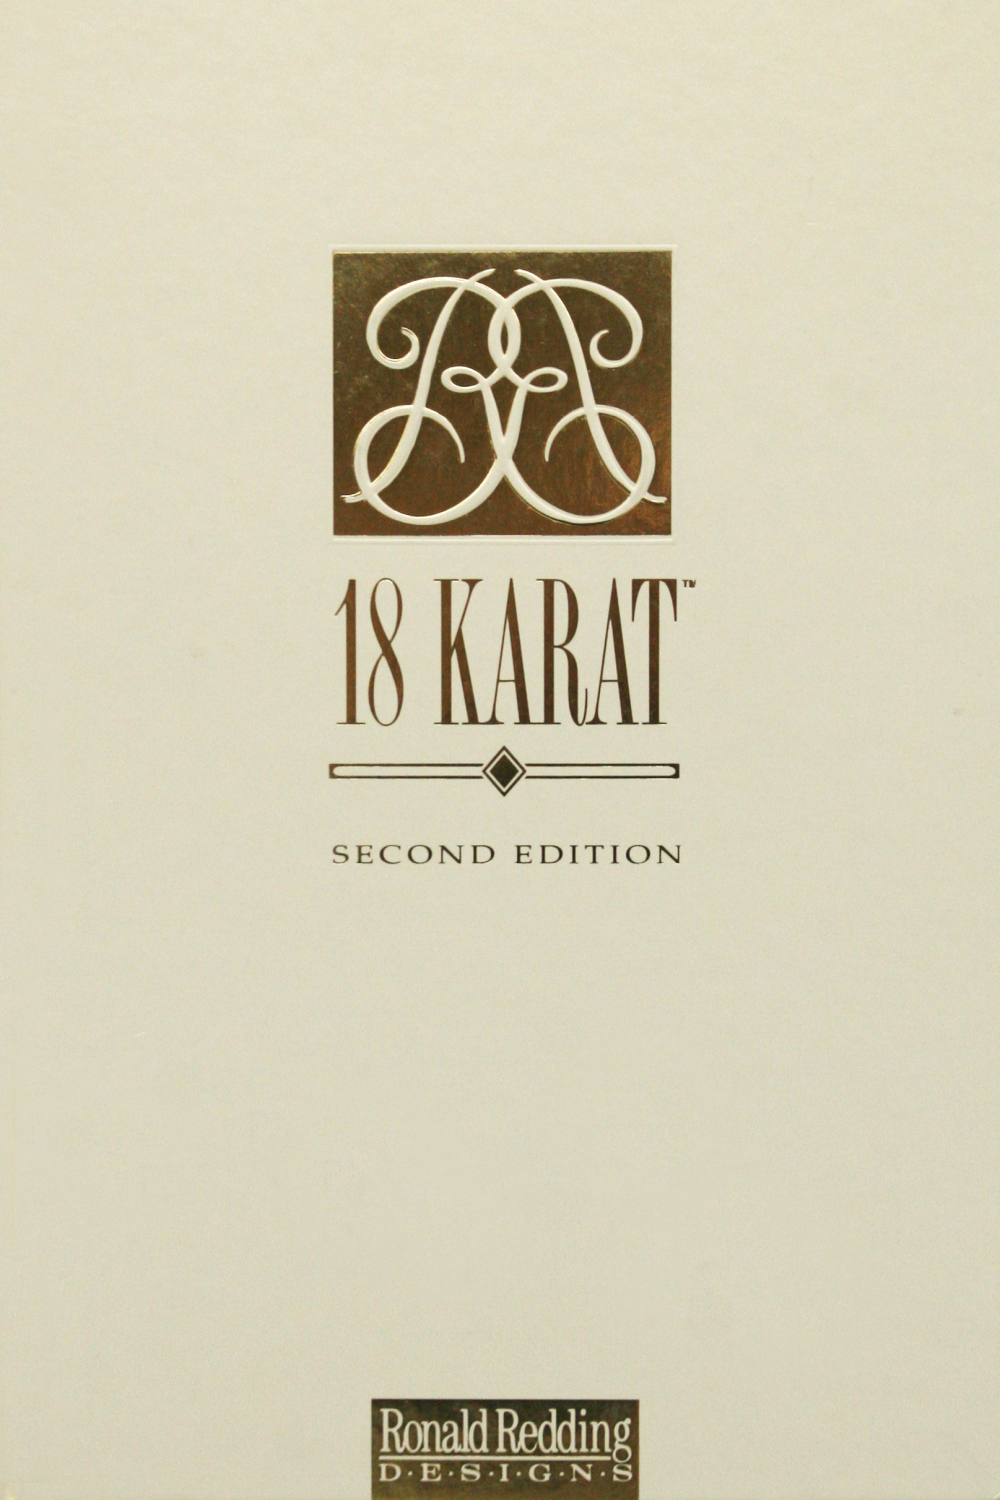 Karat II Wallpaper by Ronald Redding